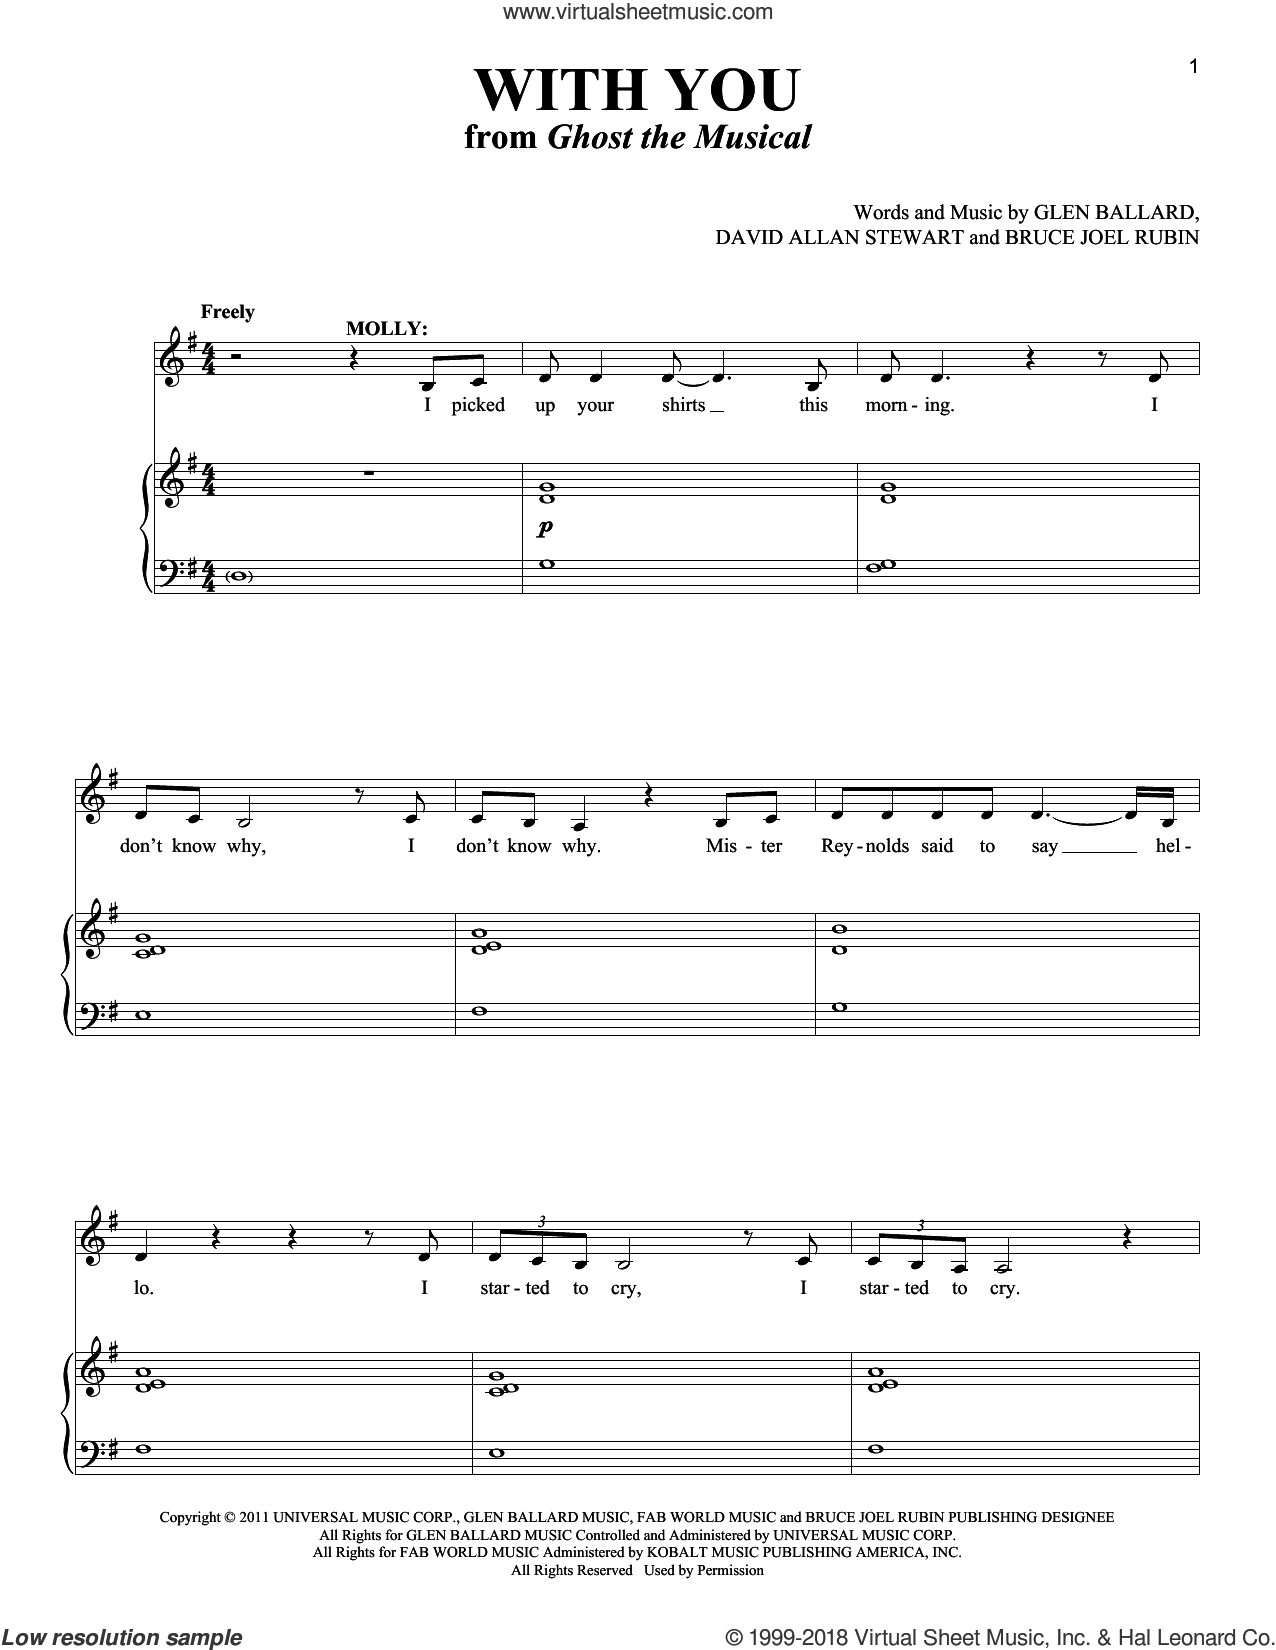 With You sheet music for voice and piano by David Allan Stewart, Richard Walters, Bruce Joel Rubin and Glen Ballard, intermediate skill level